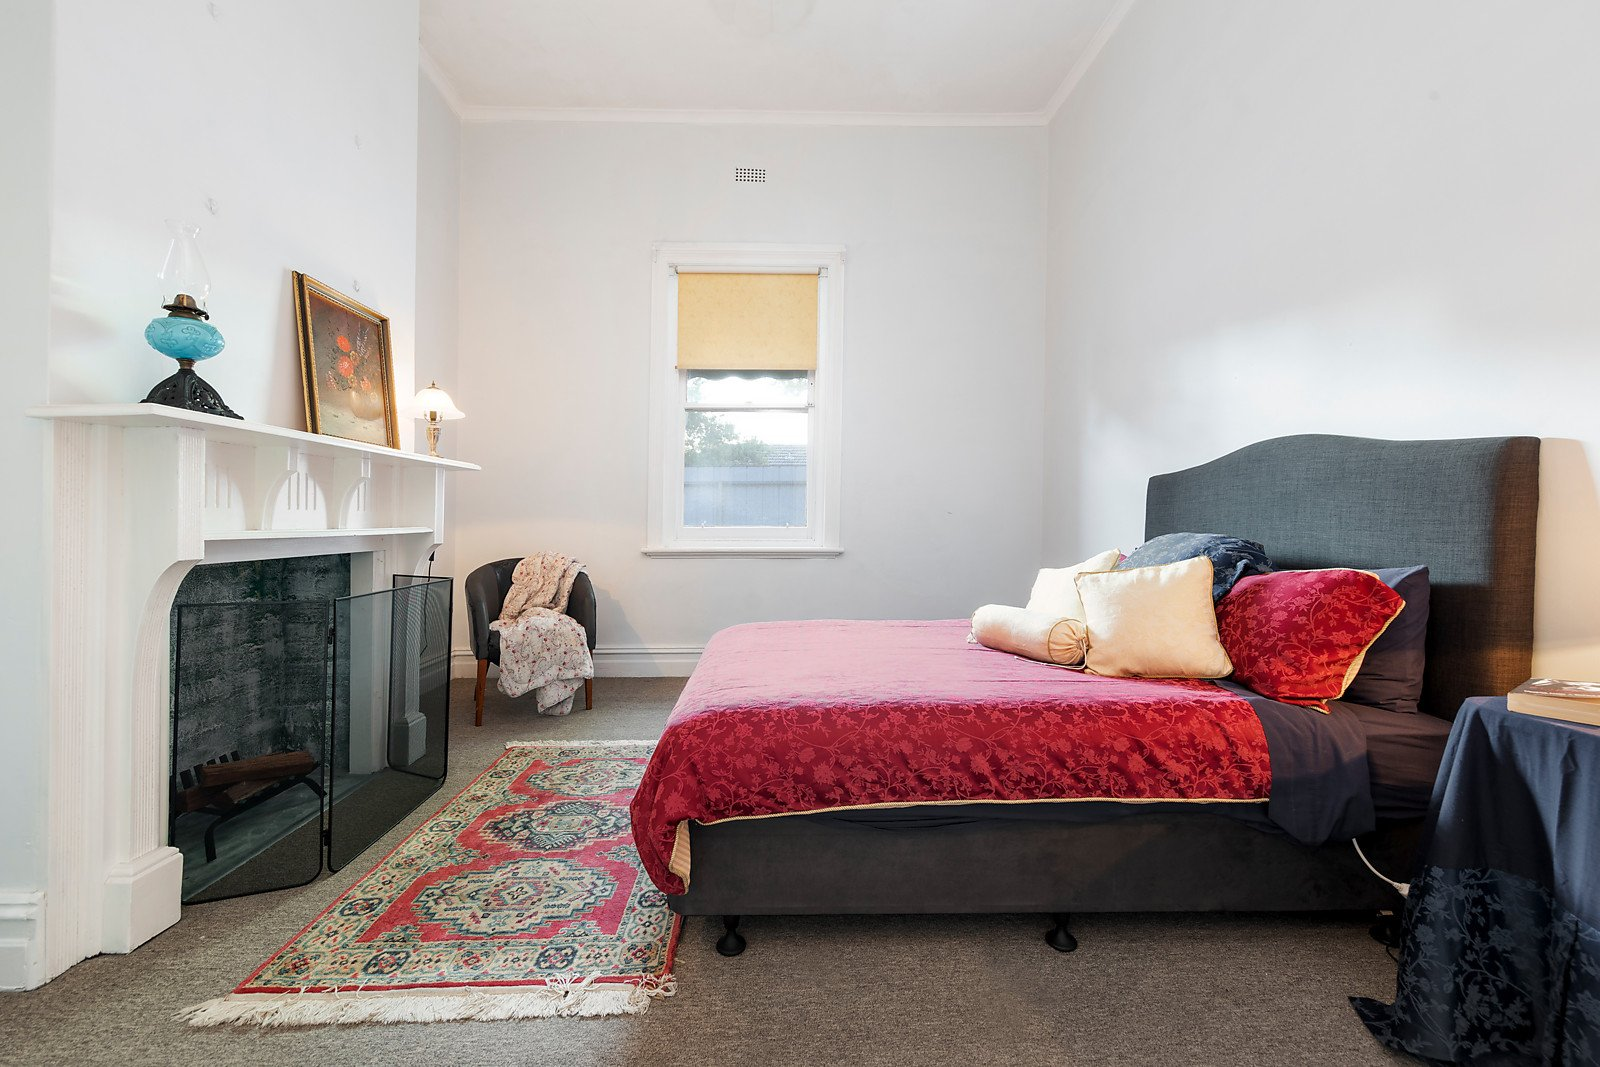 162-166 Scotchmer Street, Fitzroy North, VIC, 3068 image 14